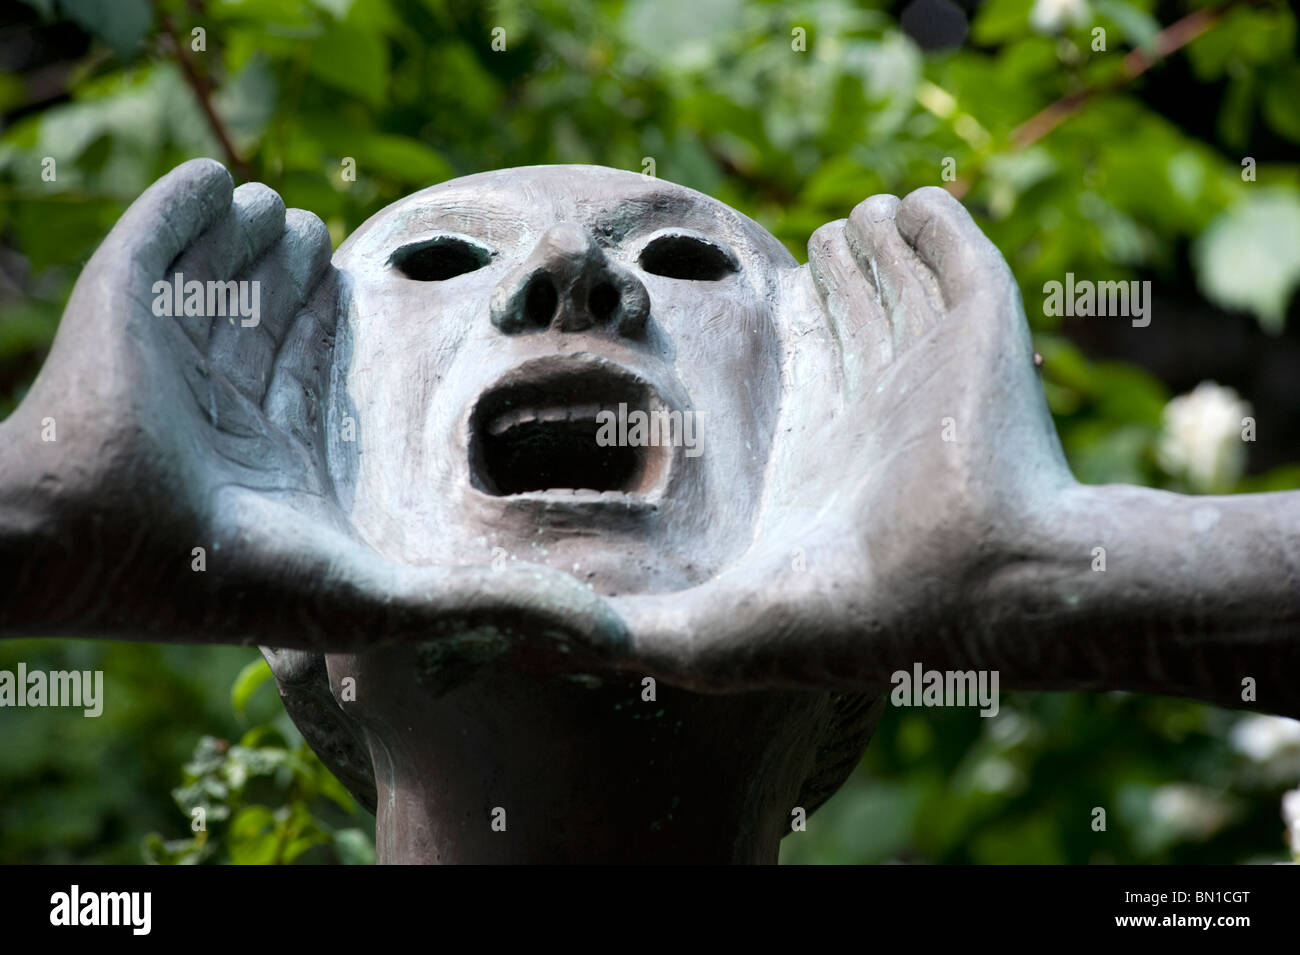 Sculpture in garden at Kathe Kollwitz Museum in Charlottenburg in Berlin Germany - Stock Image